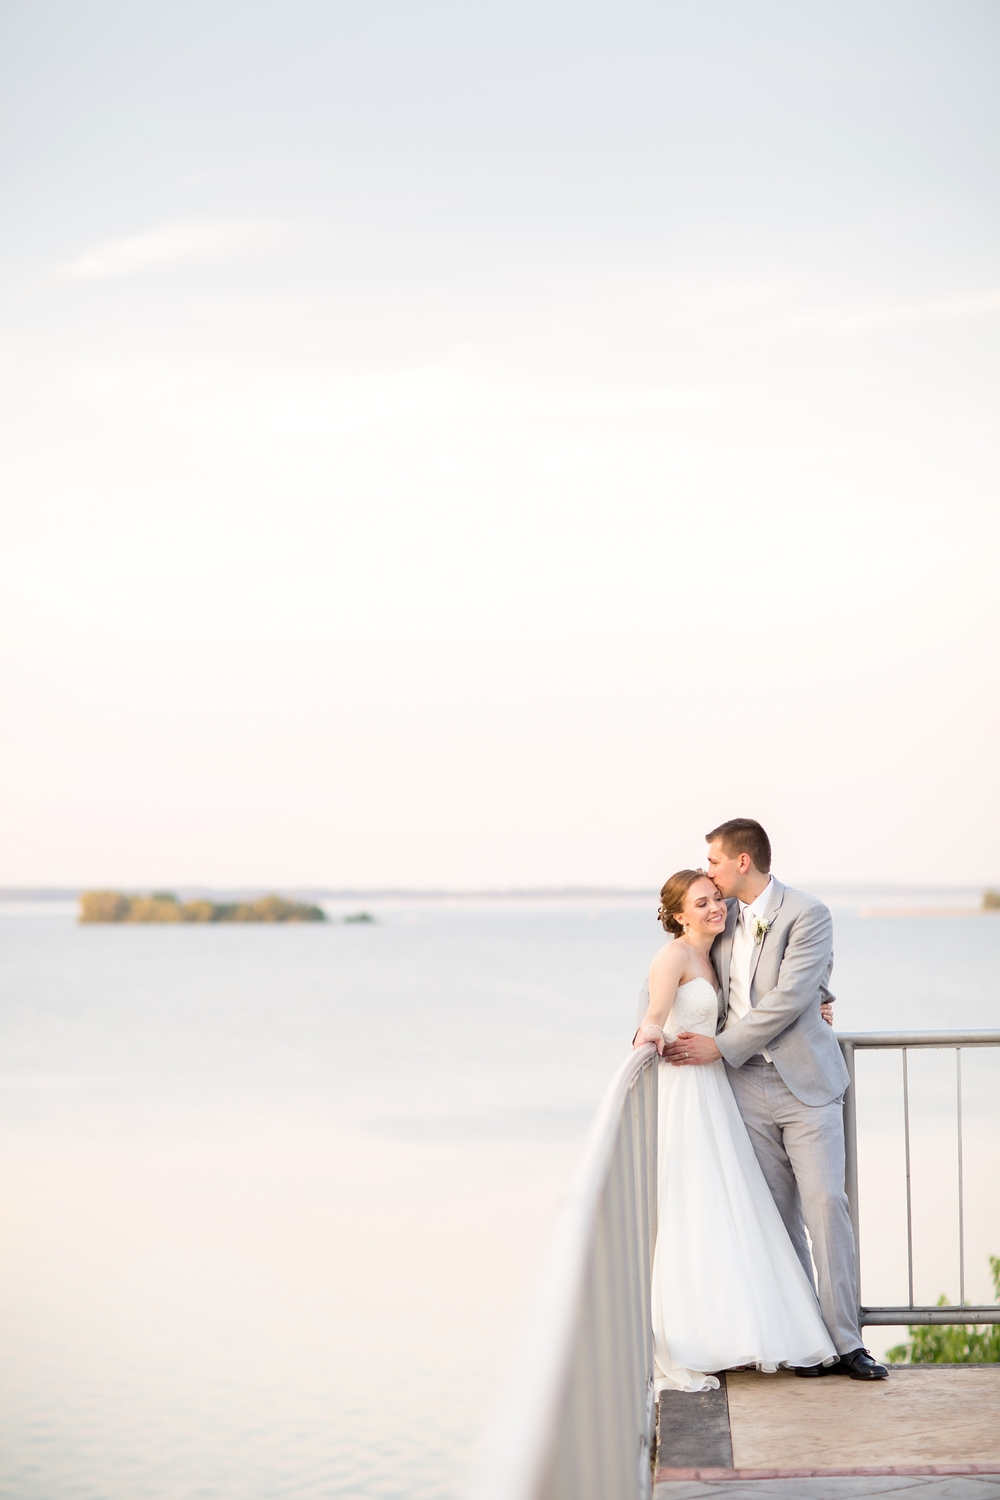 Mroz 5-Bride & Groom Portraits-733_anna grace photography top of the bay maryland wedding photographer photo.jpg